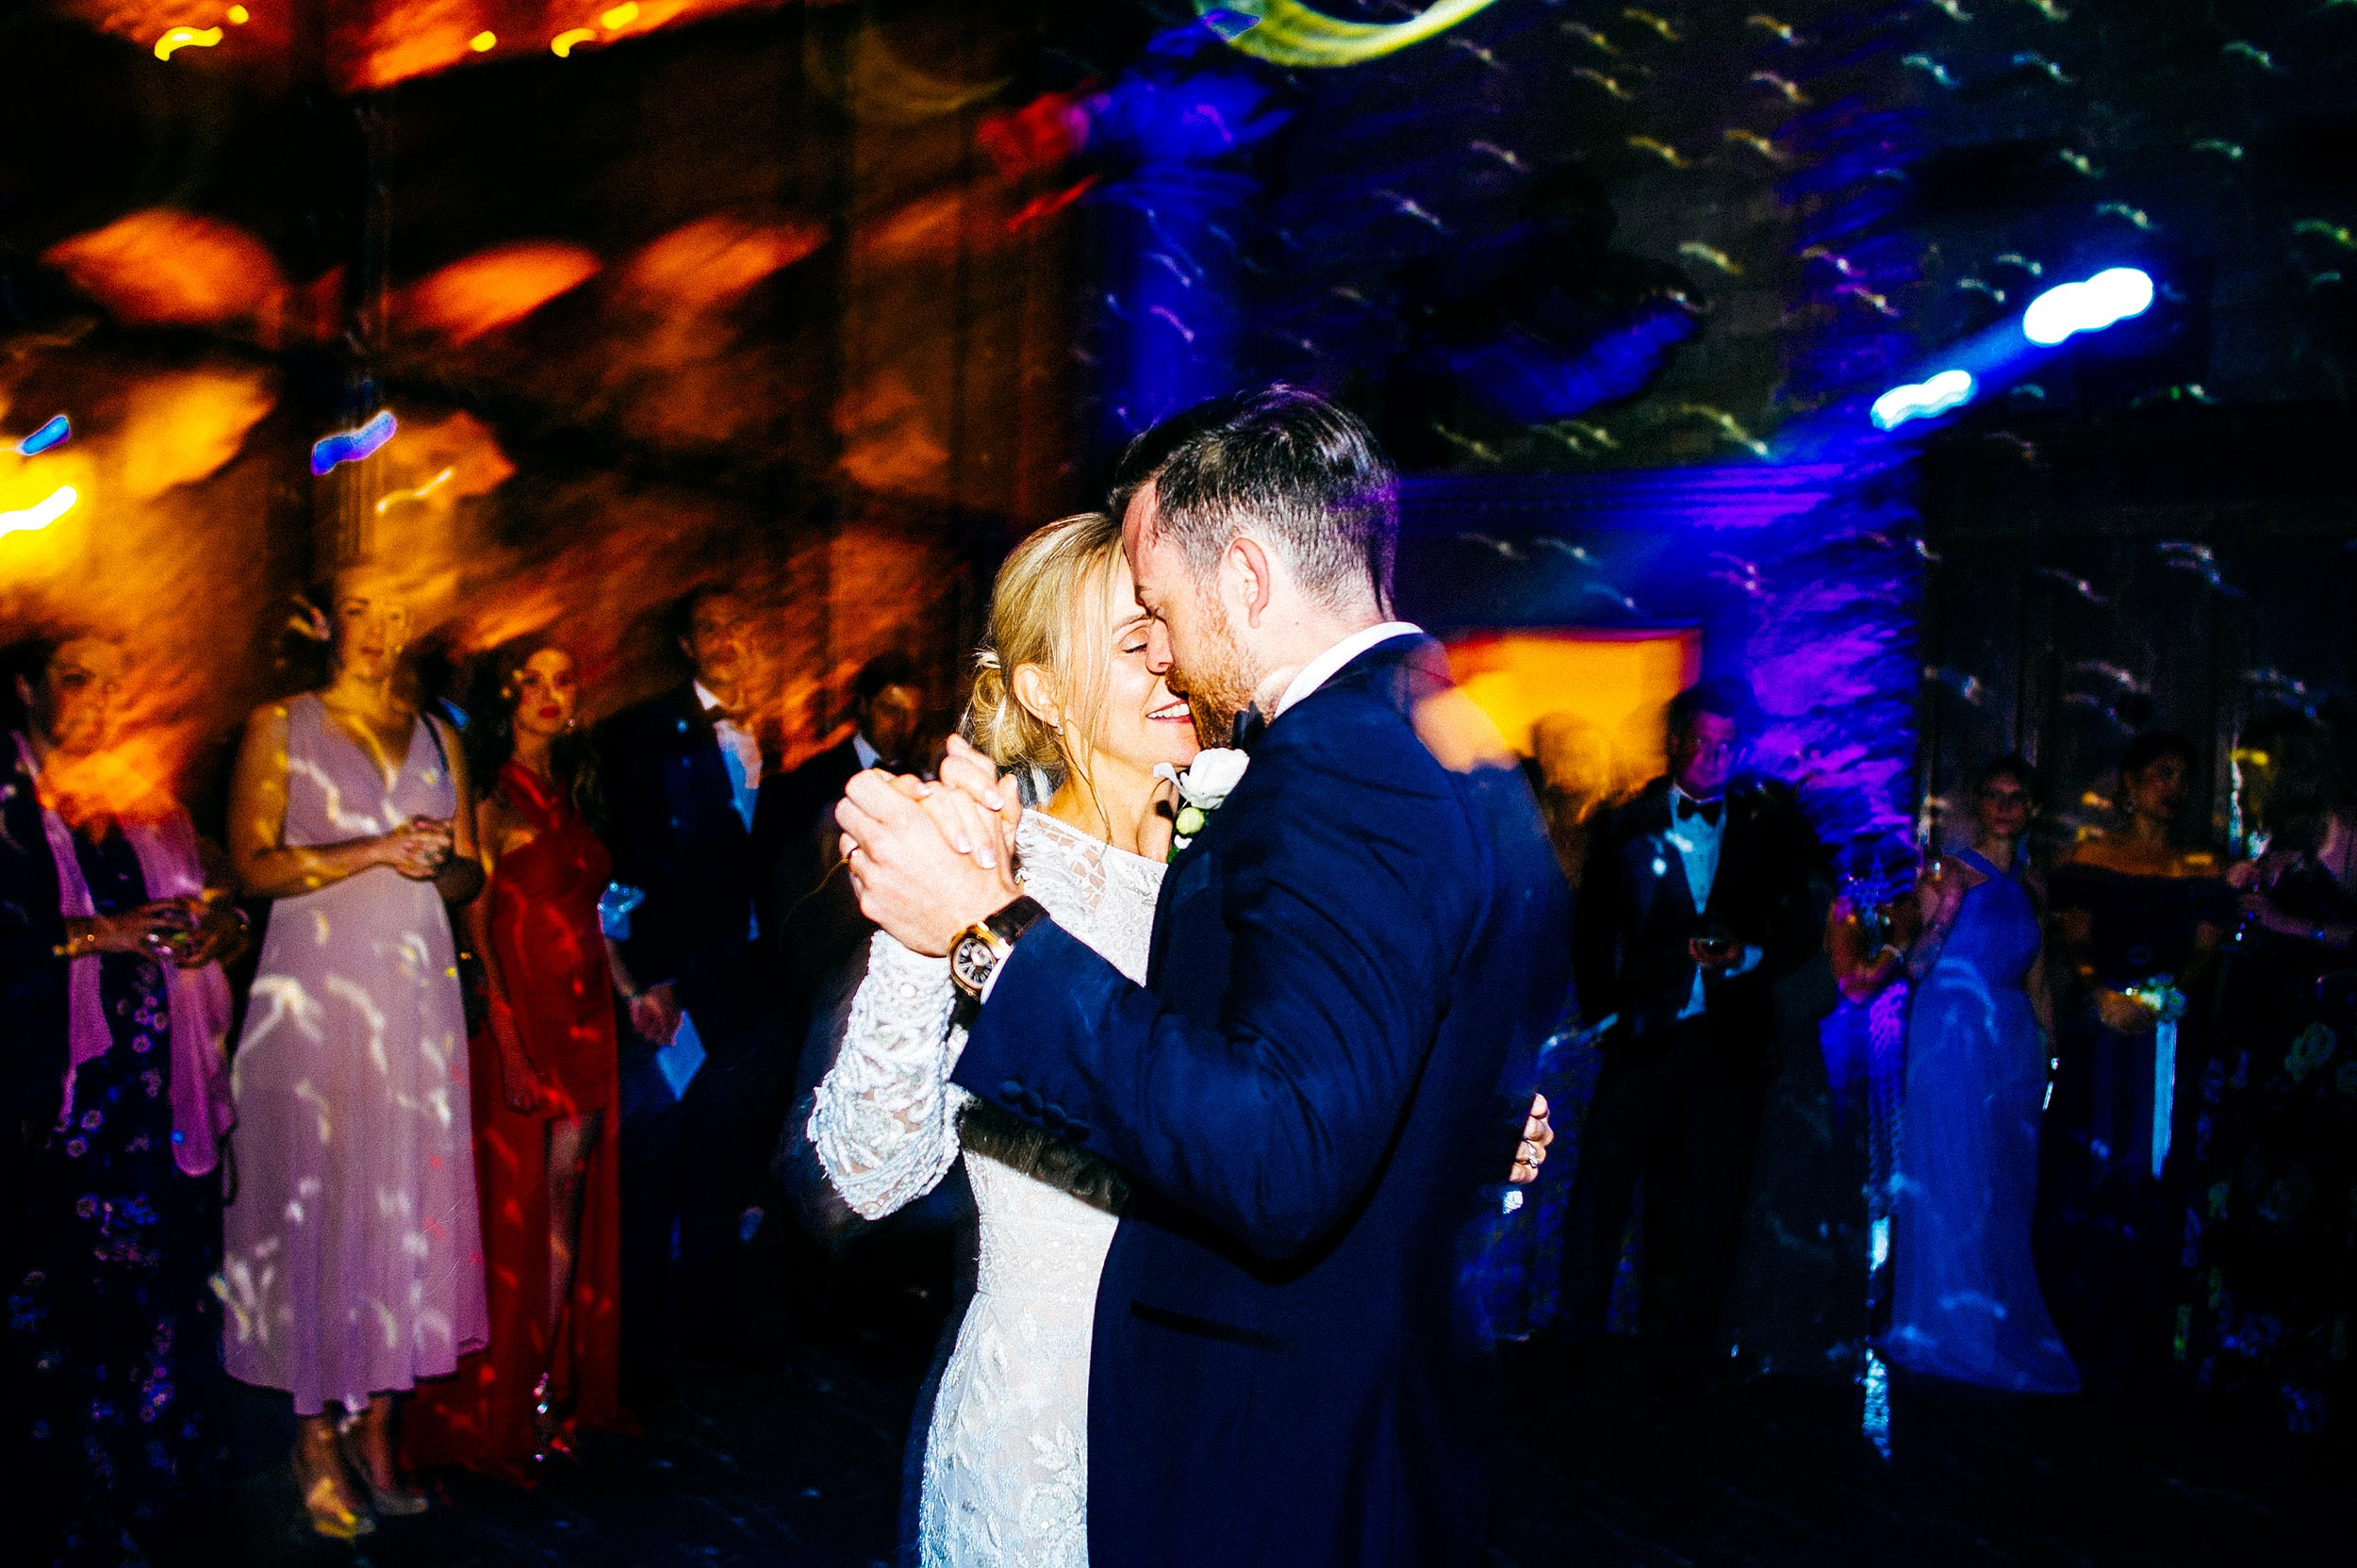 first dance bride and groom Tuscany Italy candid destination wedding photographer Alessandro Avenali.jpg